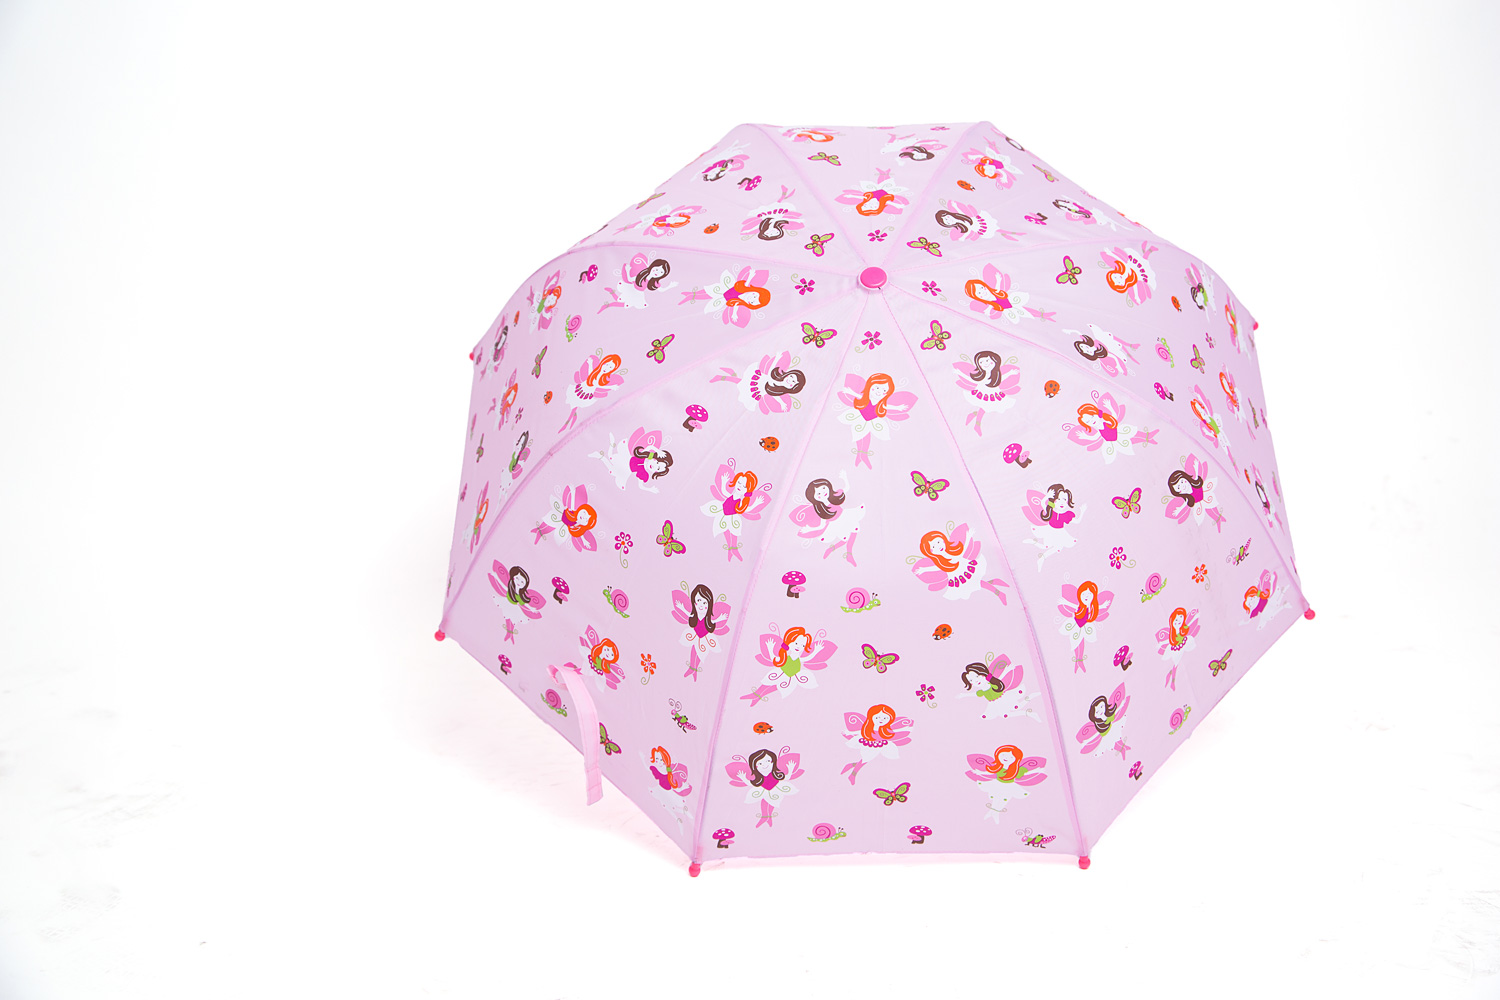 Fairies Umbrella